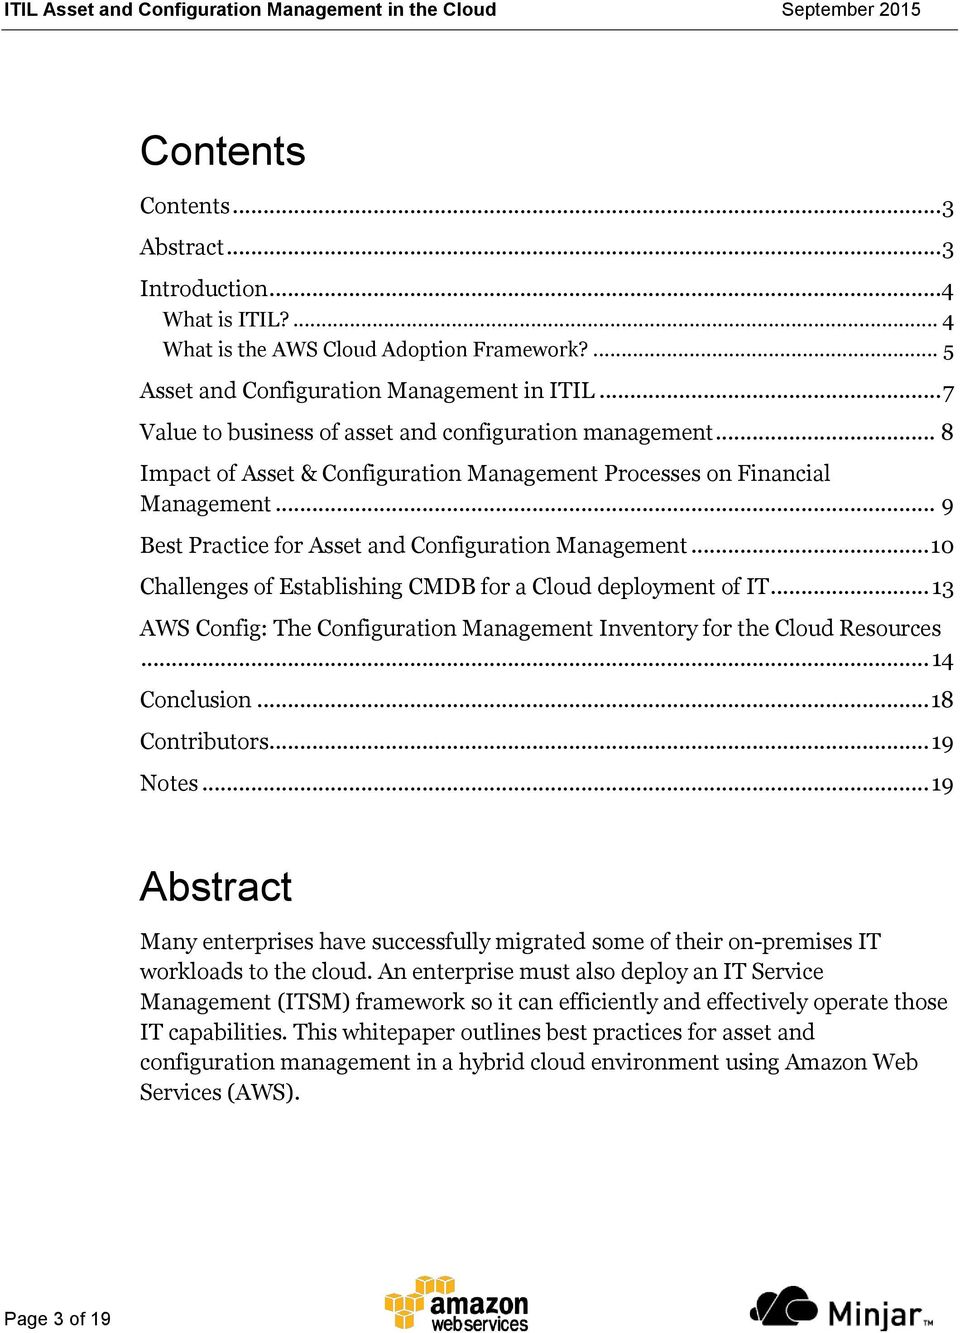 ITIL Asset and Configuration  Management in the Cloud - PDF